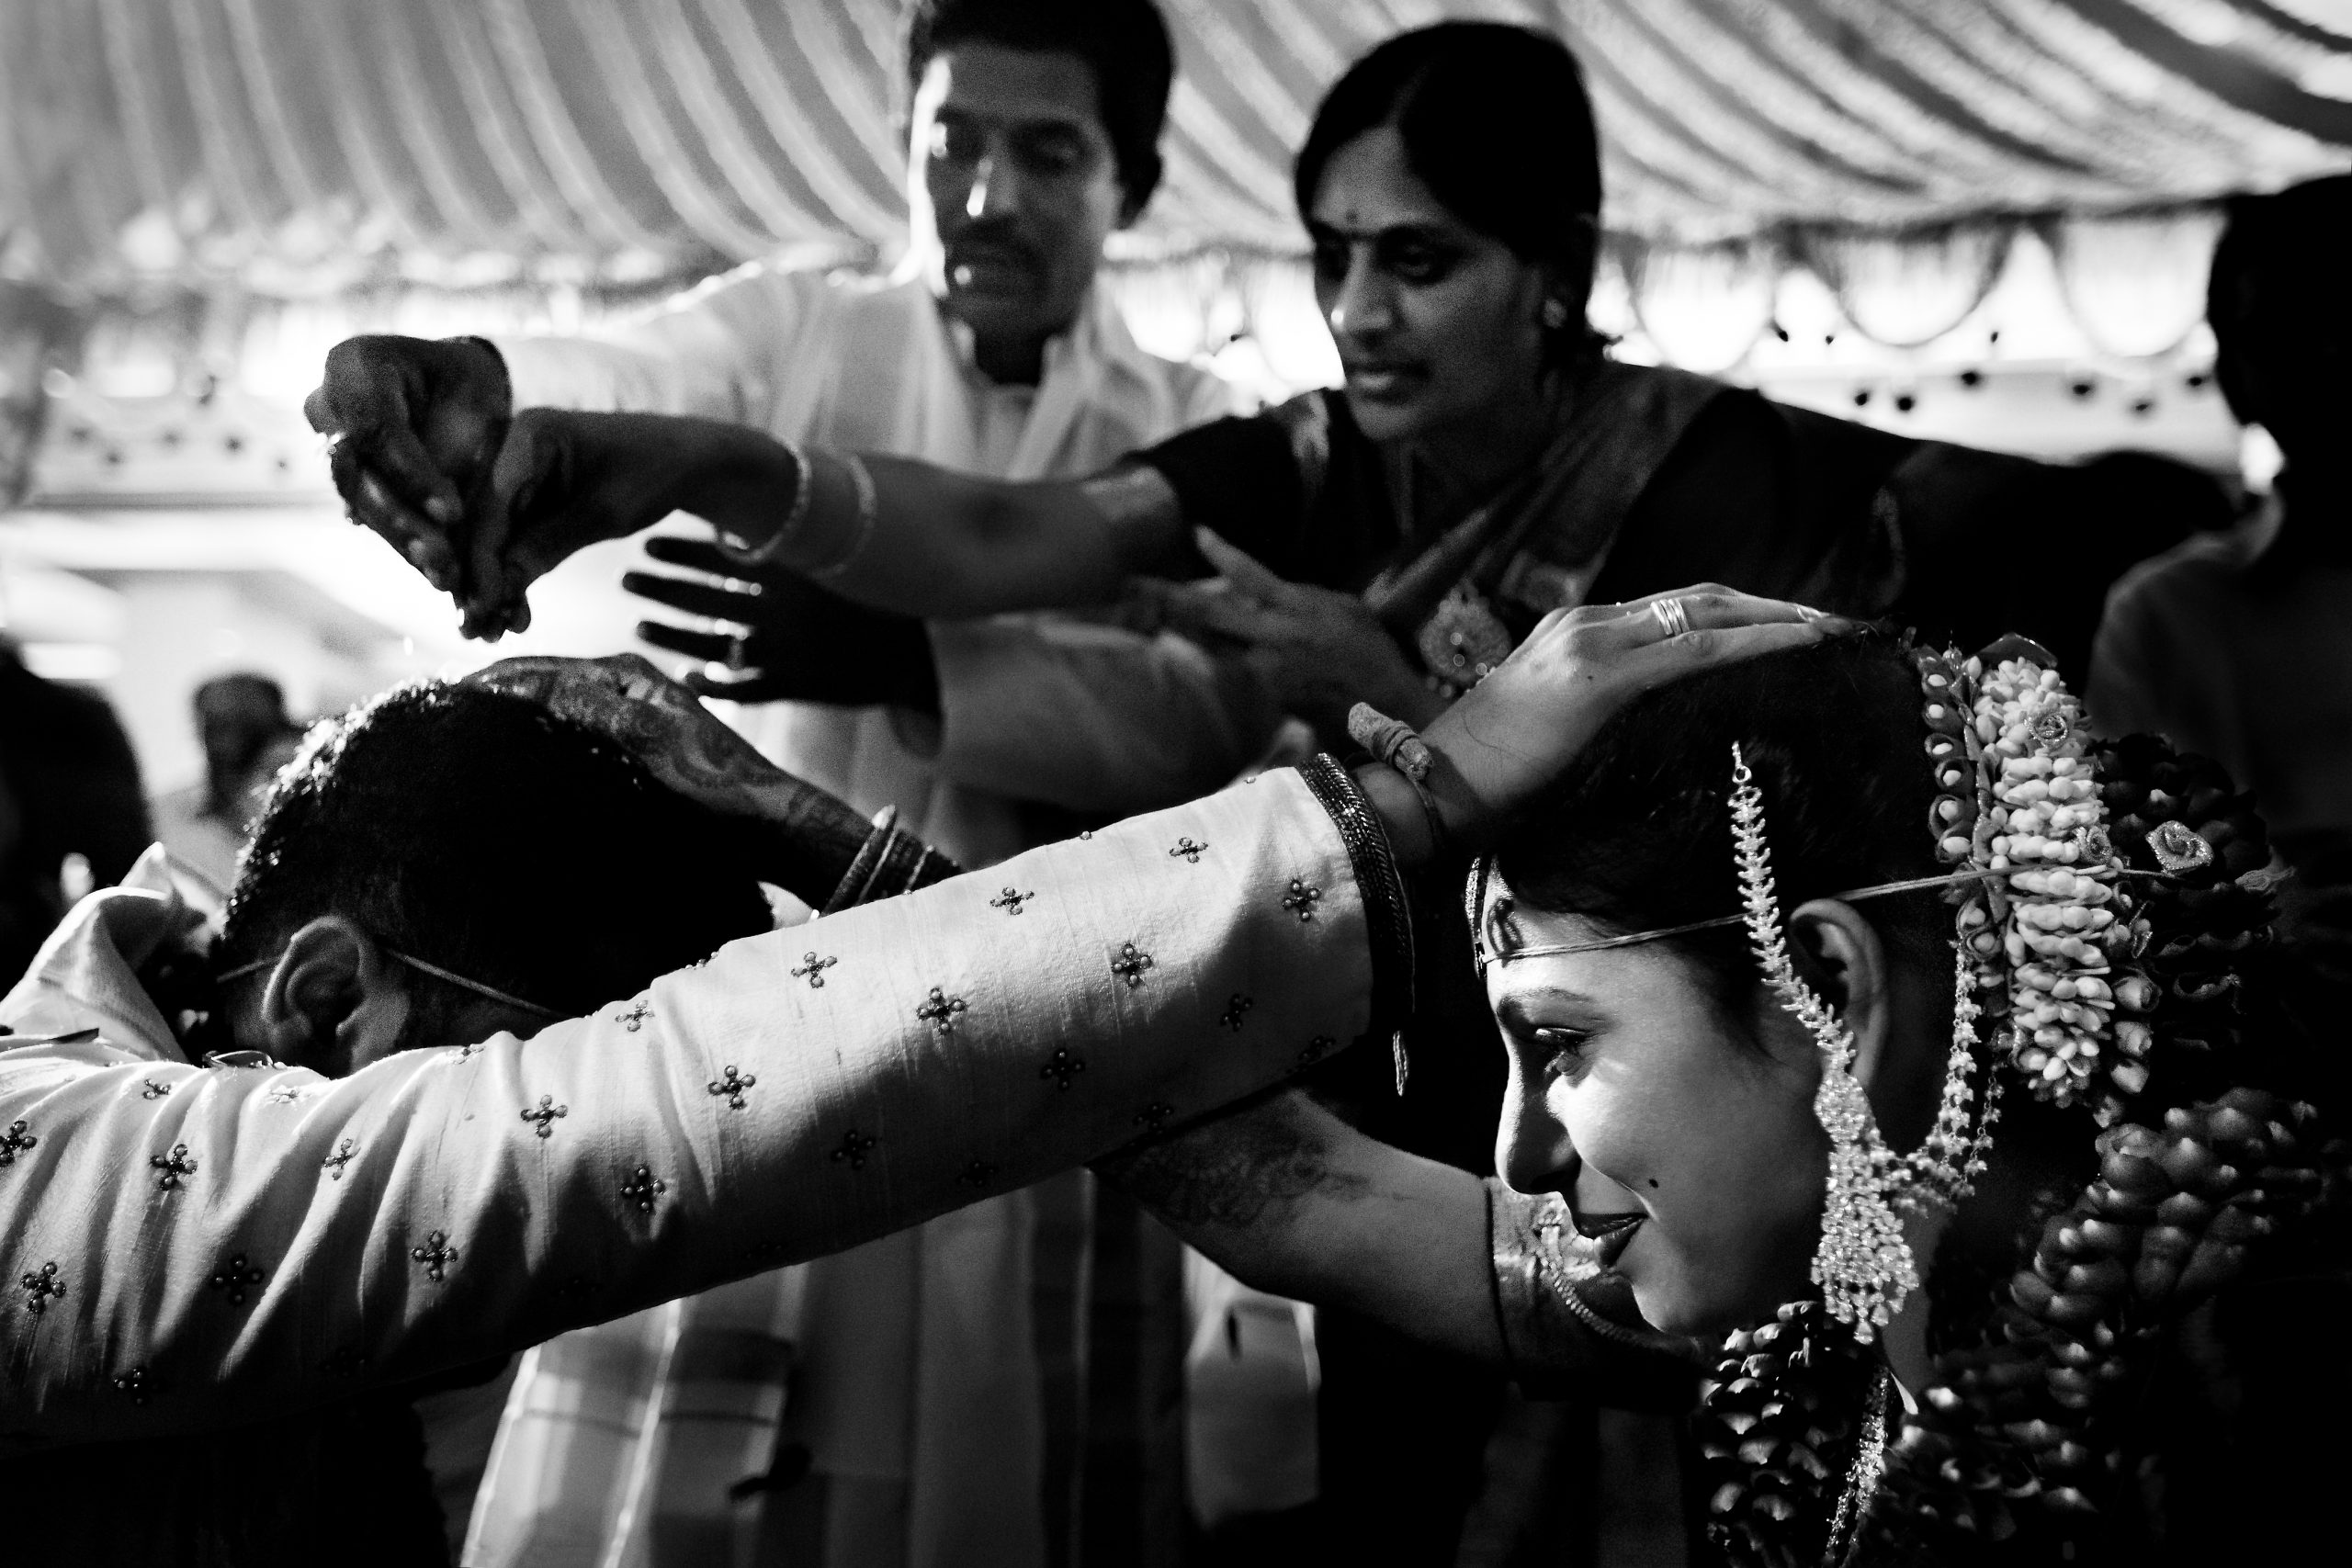 Bride and groom touch each other's heads by one hand at ceremony